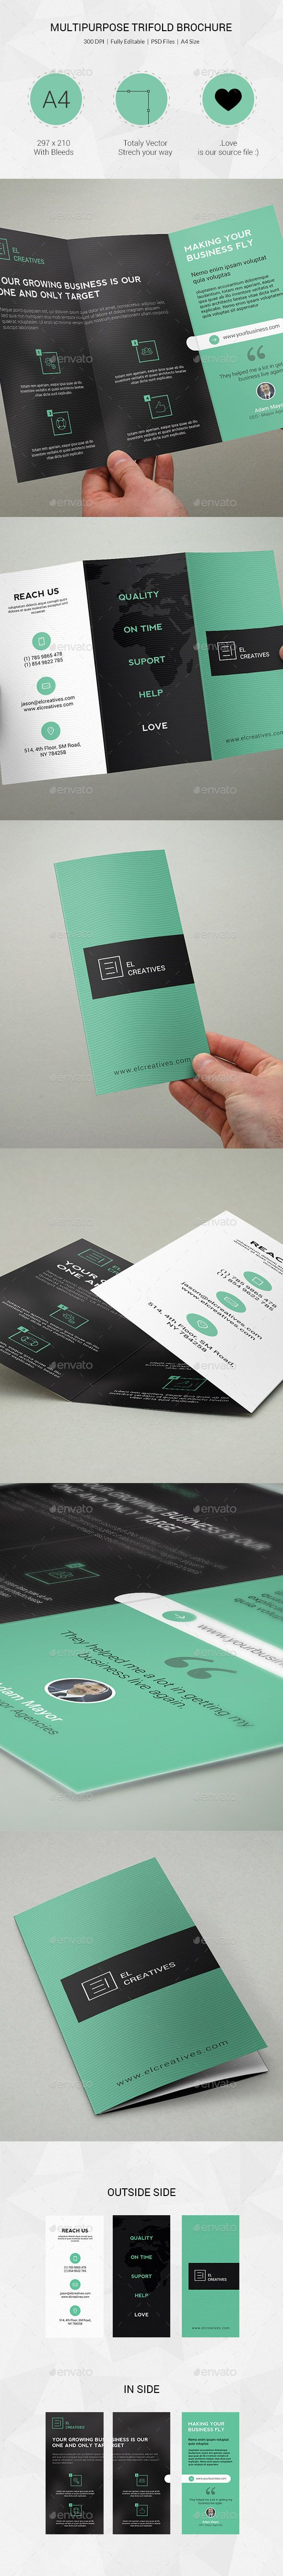 PSD Creative Multipurpose Trifold Brochure - 08 Template • Only available here ➝ http://graphicriver.net/item/creative-multipurpose-trifold-brochure-08/11809224?ref=pxcr